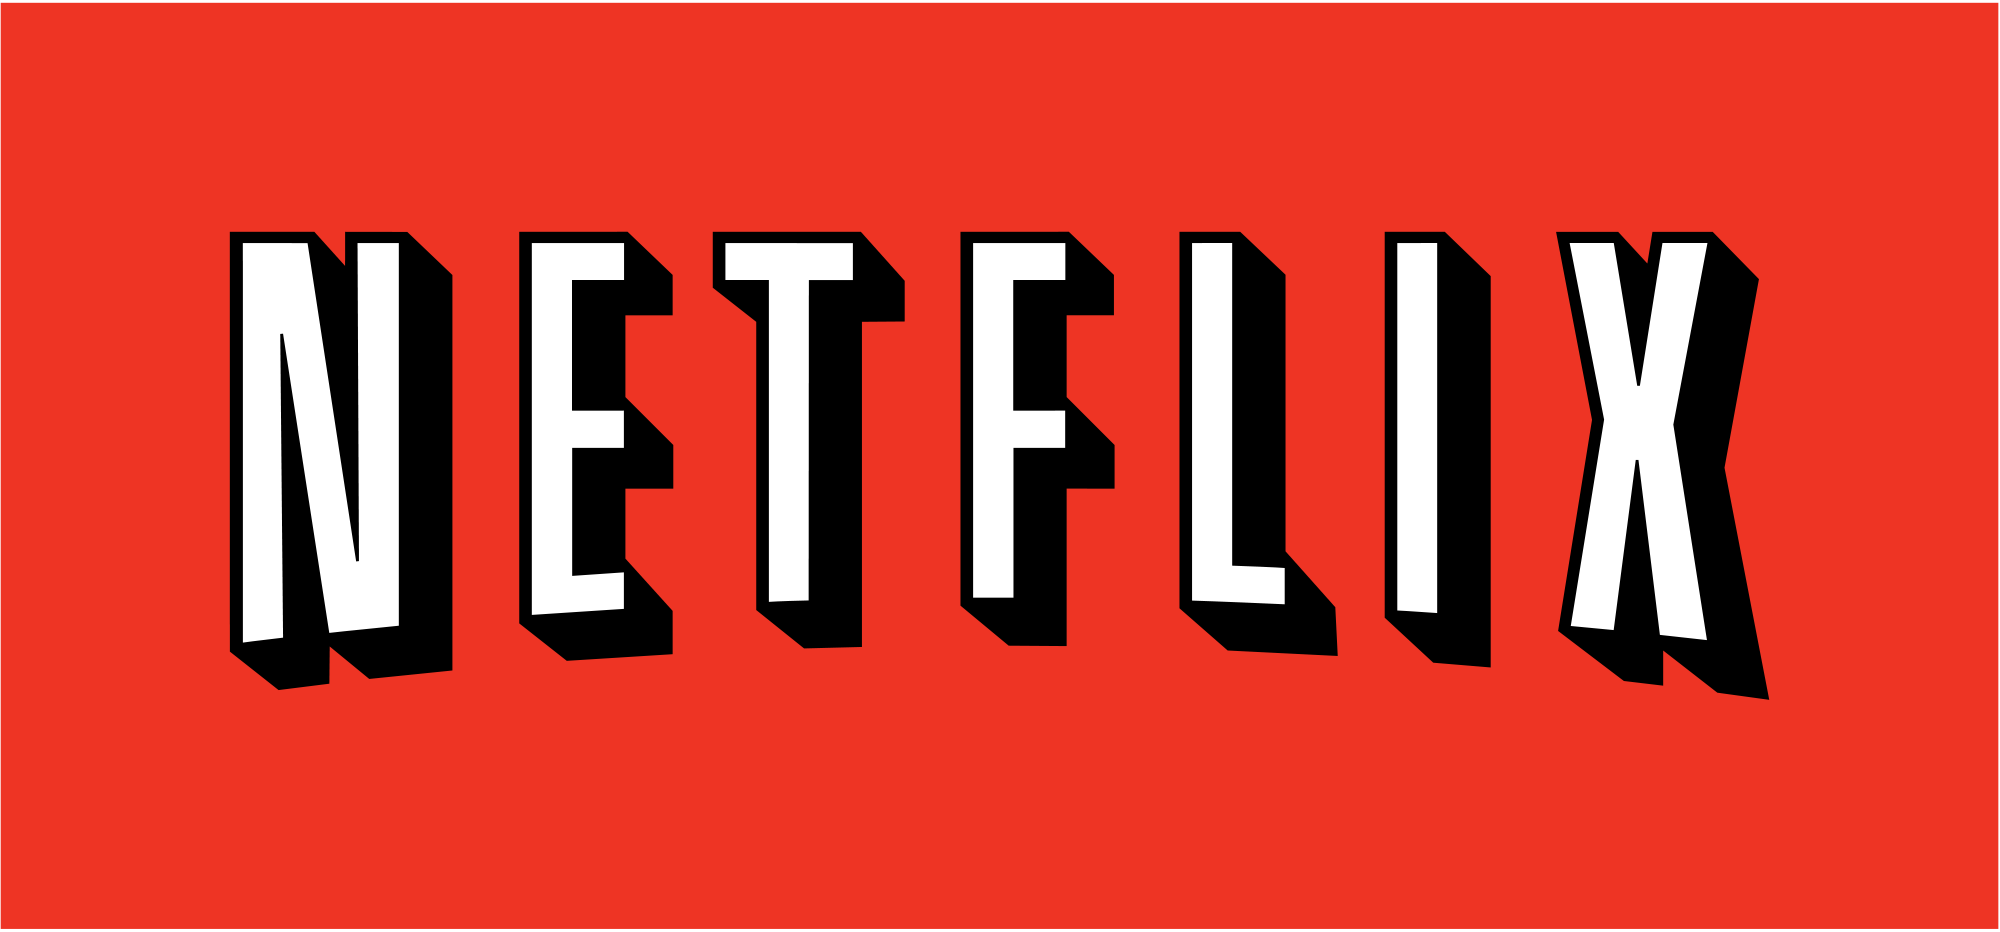 The Netflix logo - Image Courtesy: Netflix, Released into the public domain | Wikimedia Commons. Published on Flickr by Global Panorama.